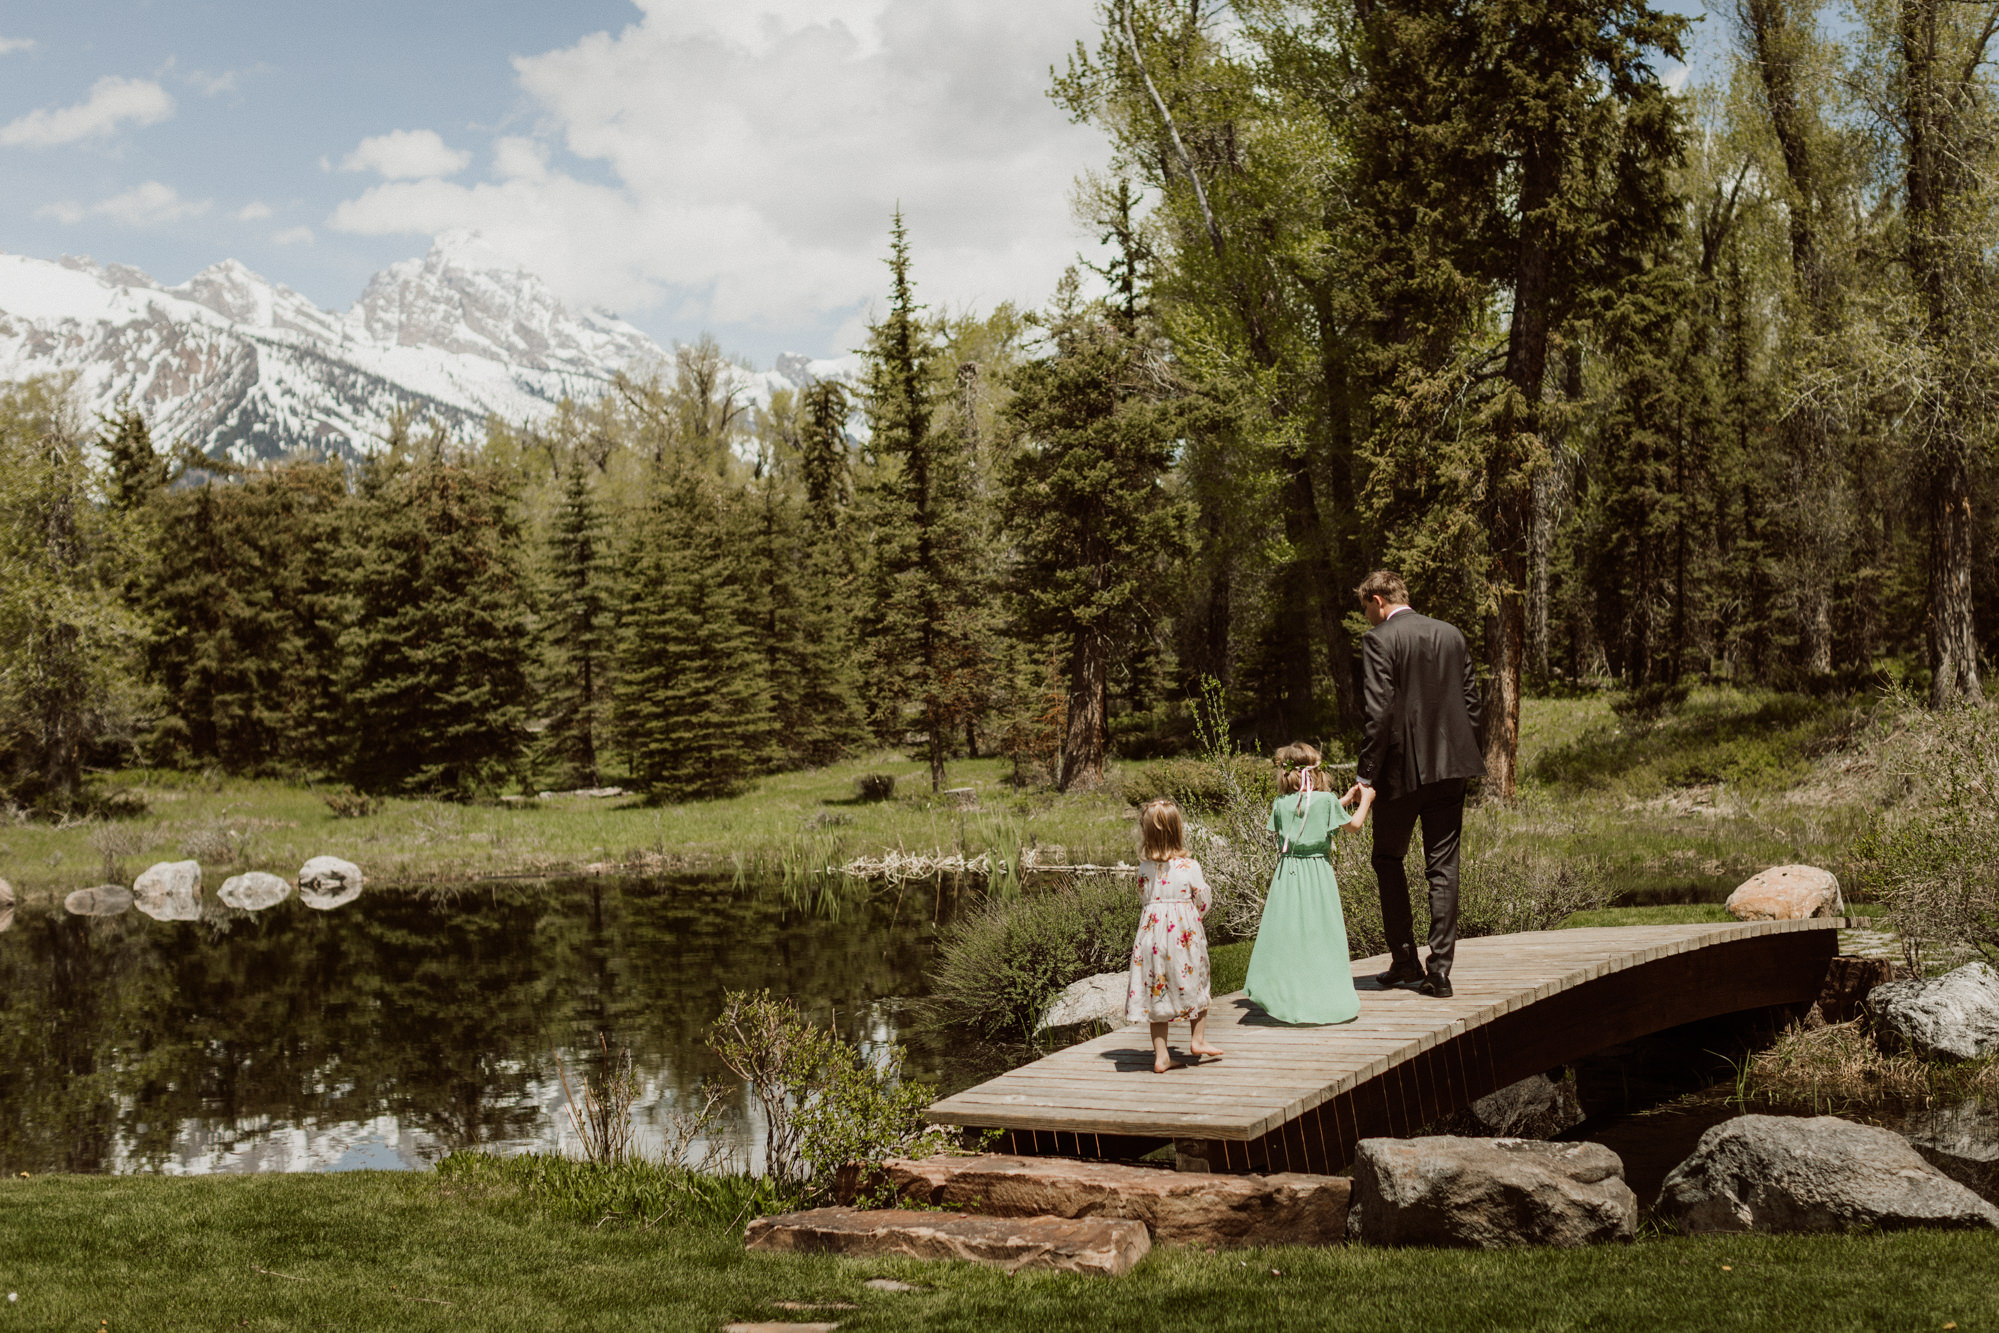 grand-teton-national-park-wedding-22.jpg